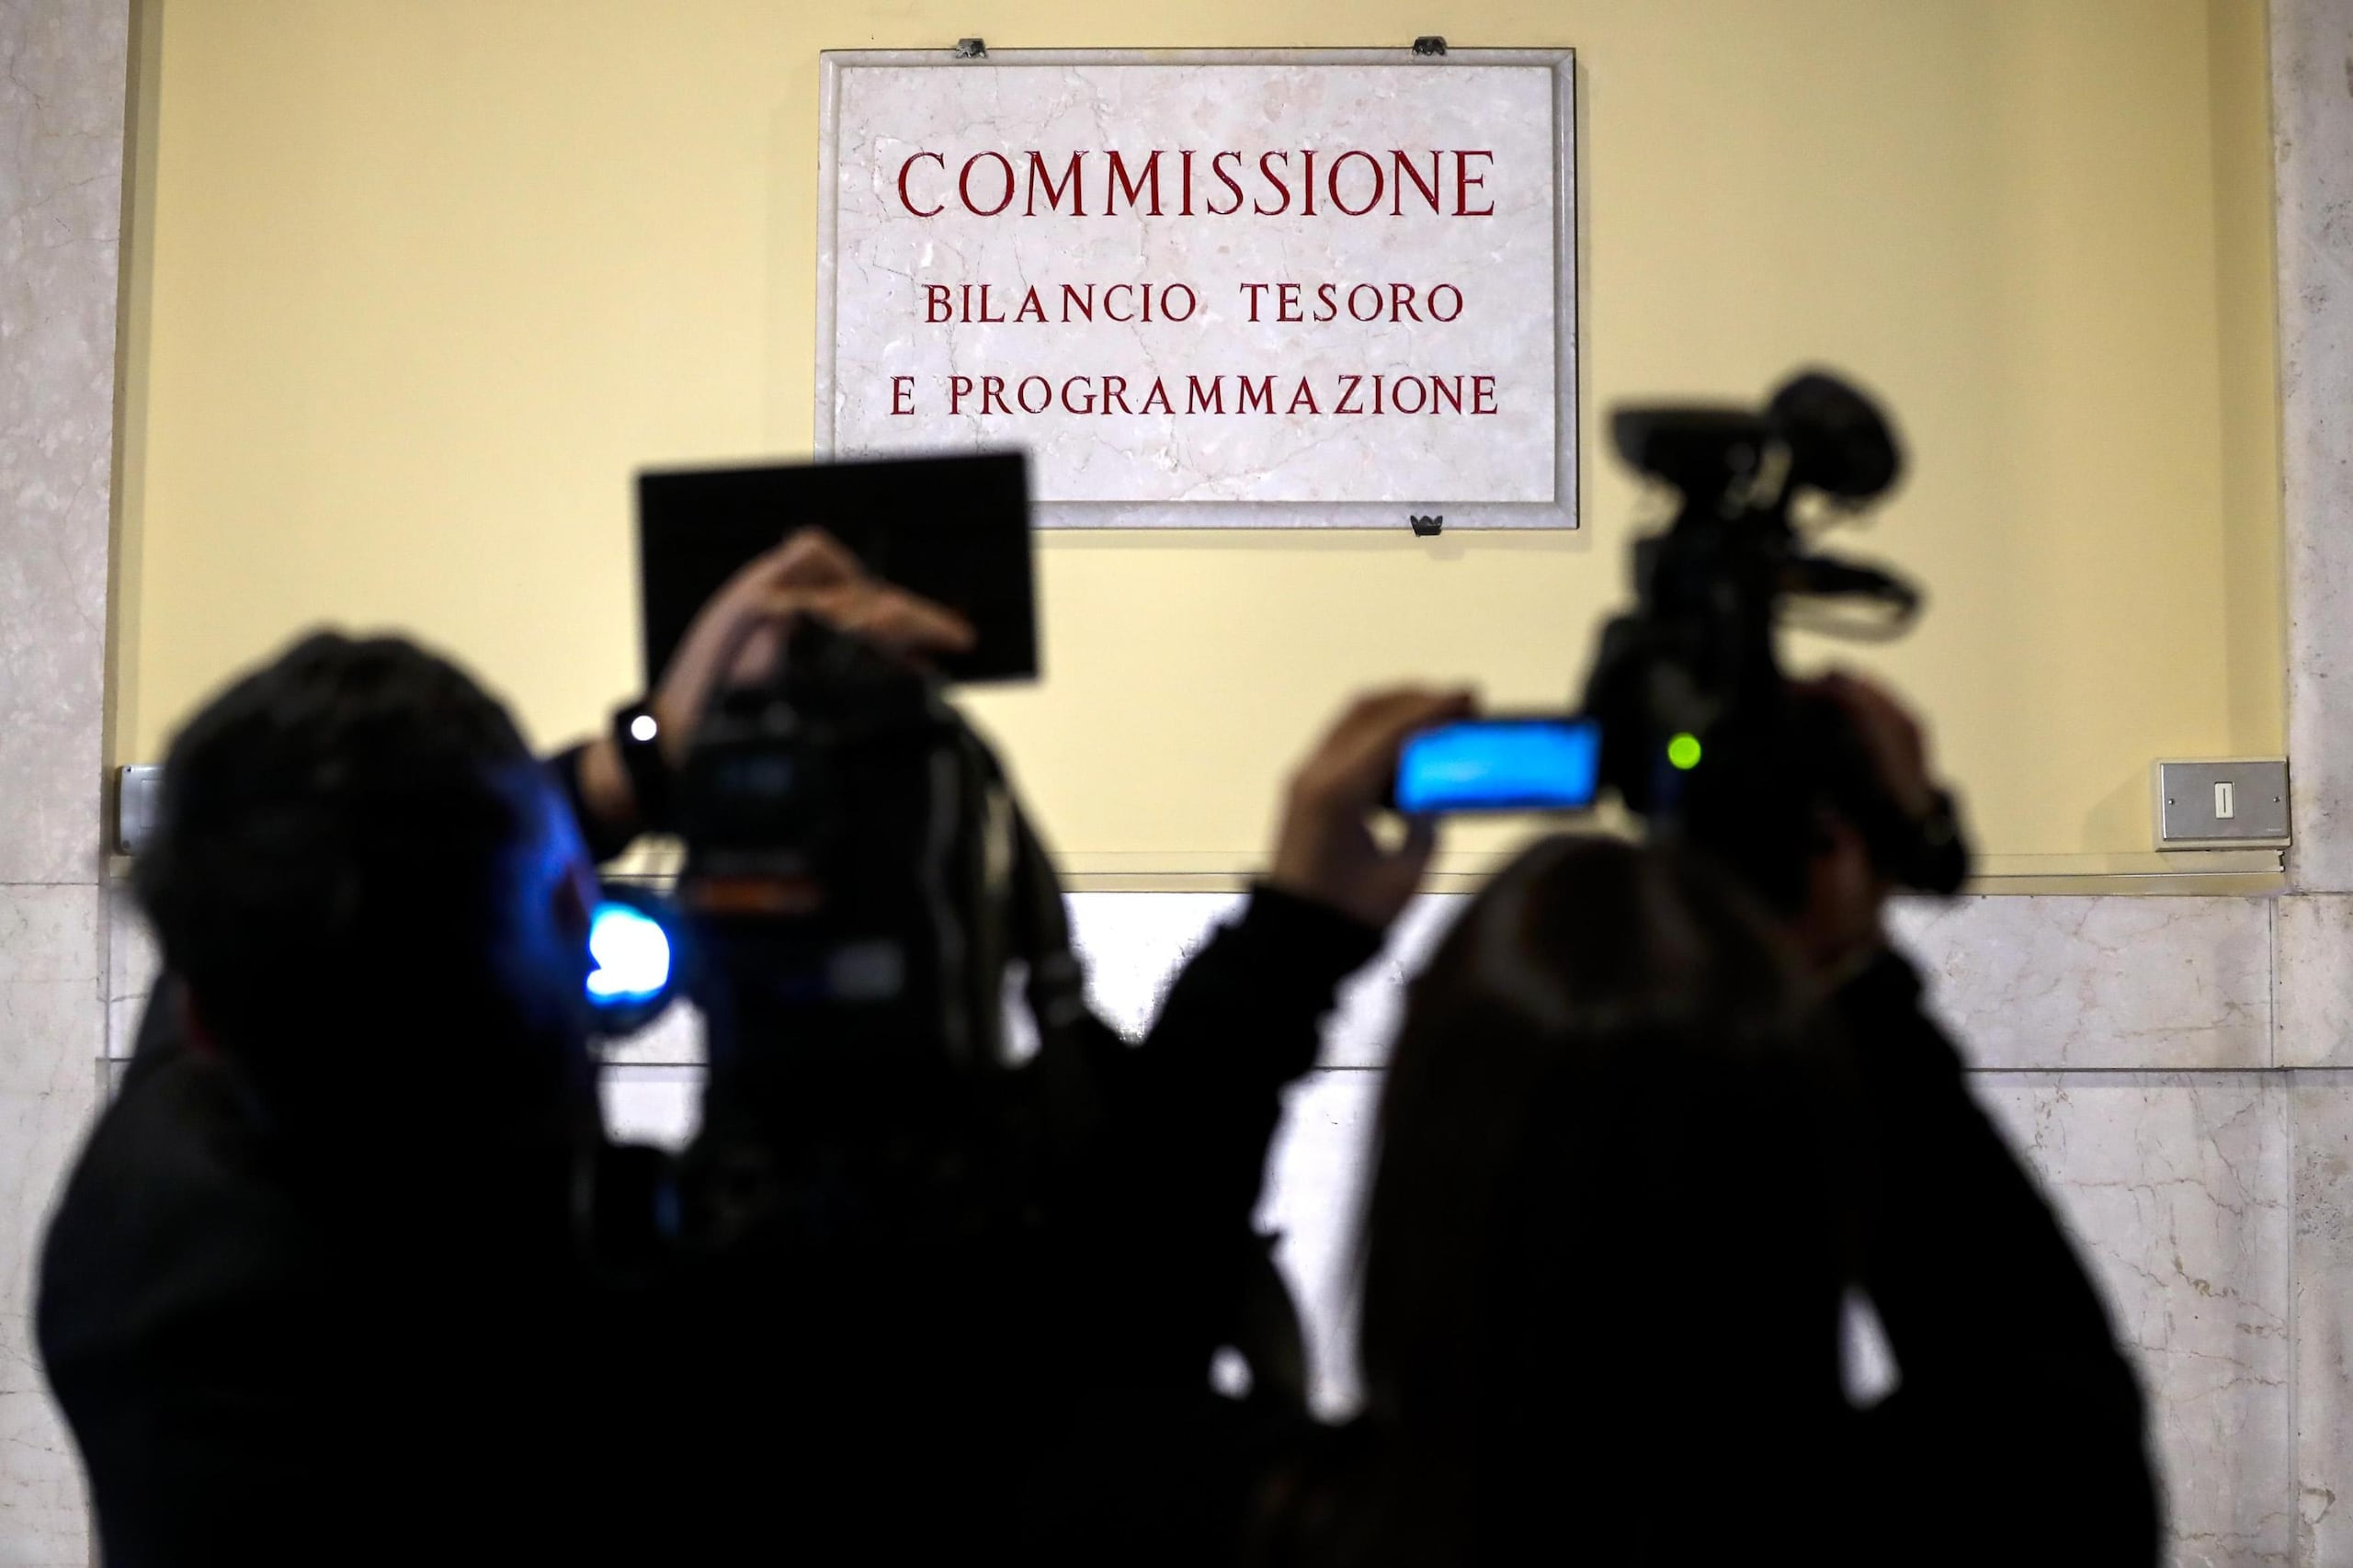 Manovra commissione camera vota mandato for Commissione bilancio camera